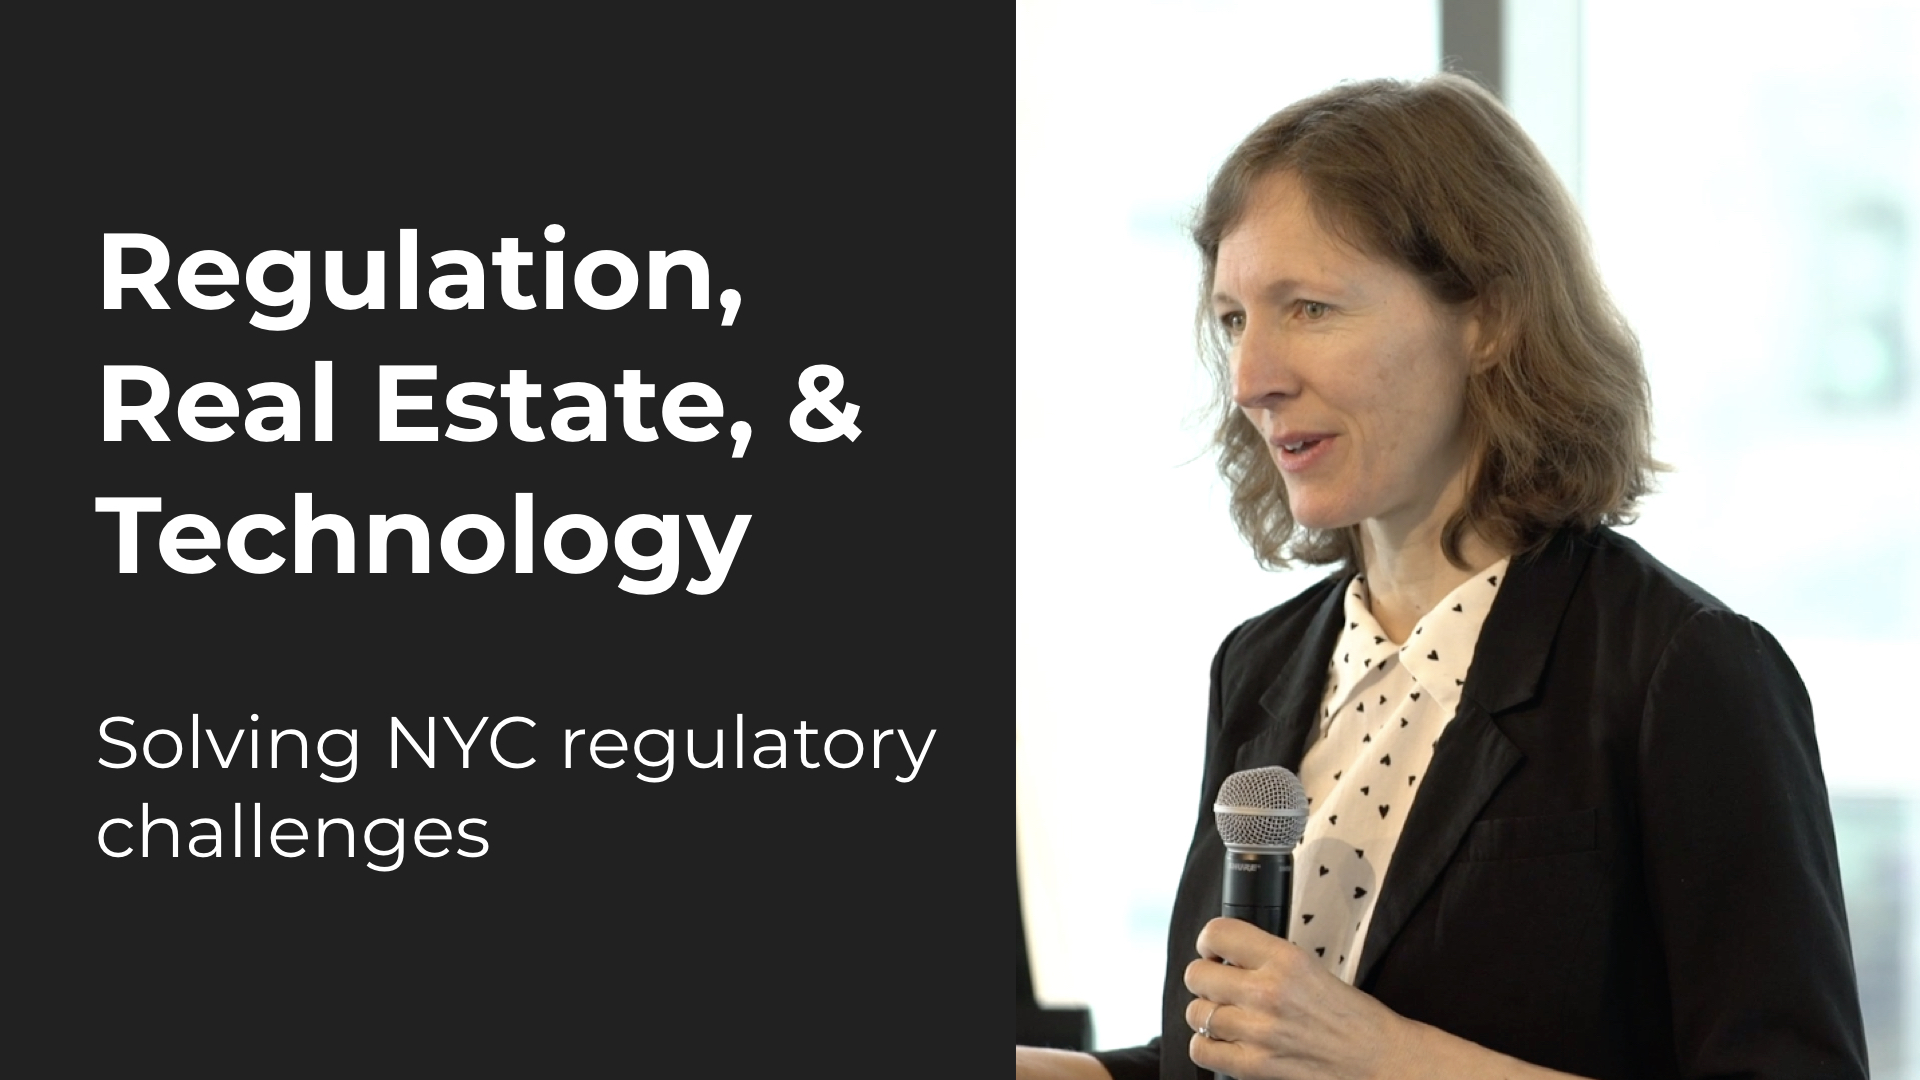 Navigating Regulatory Technology To Build The Future